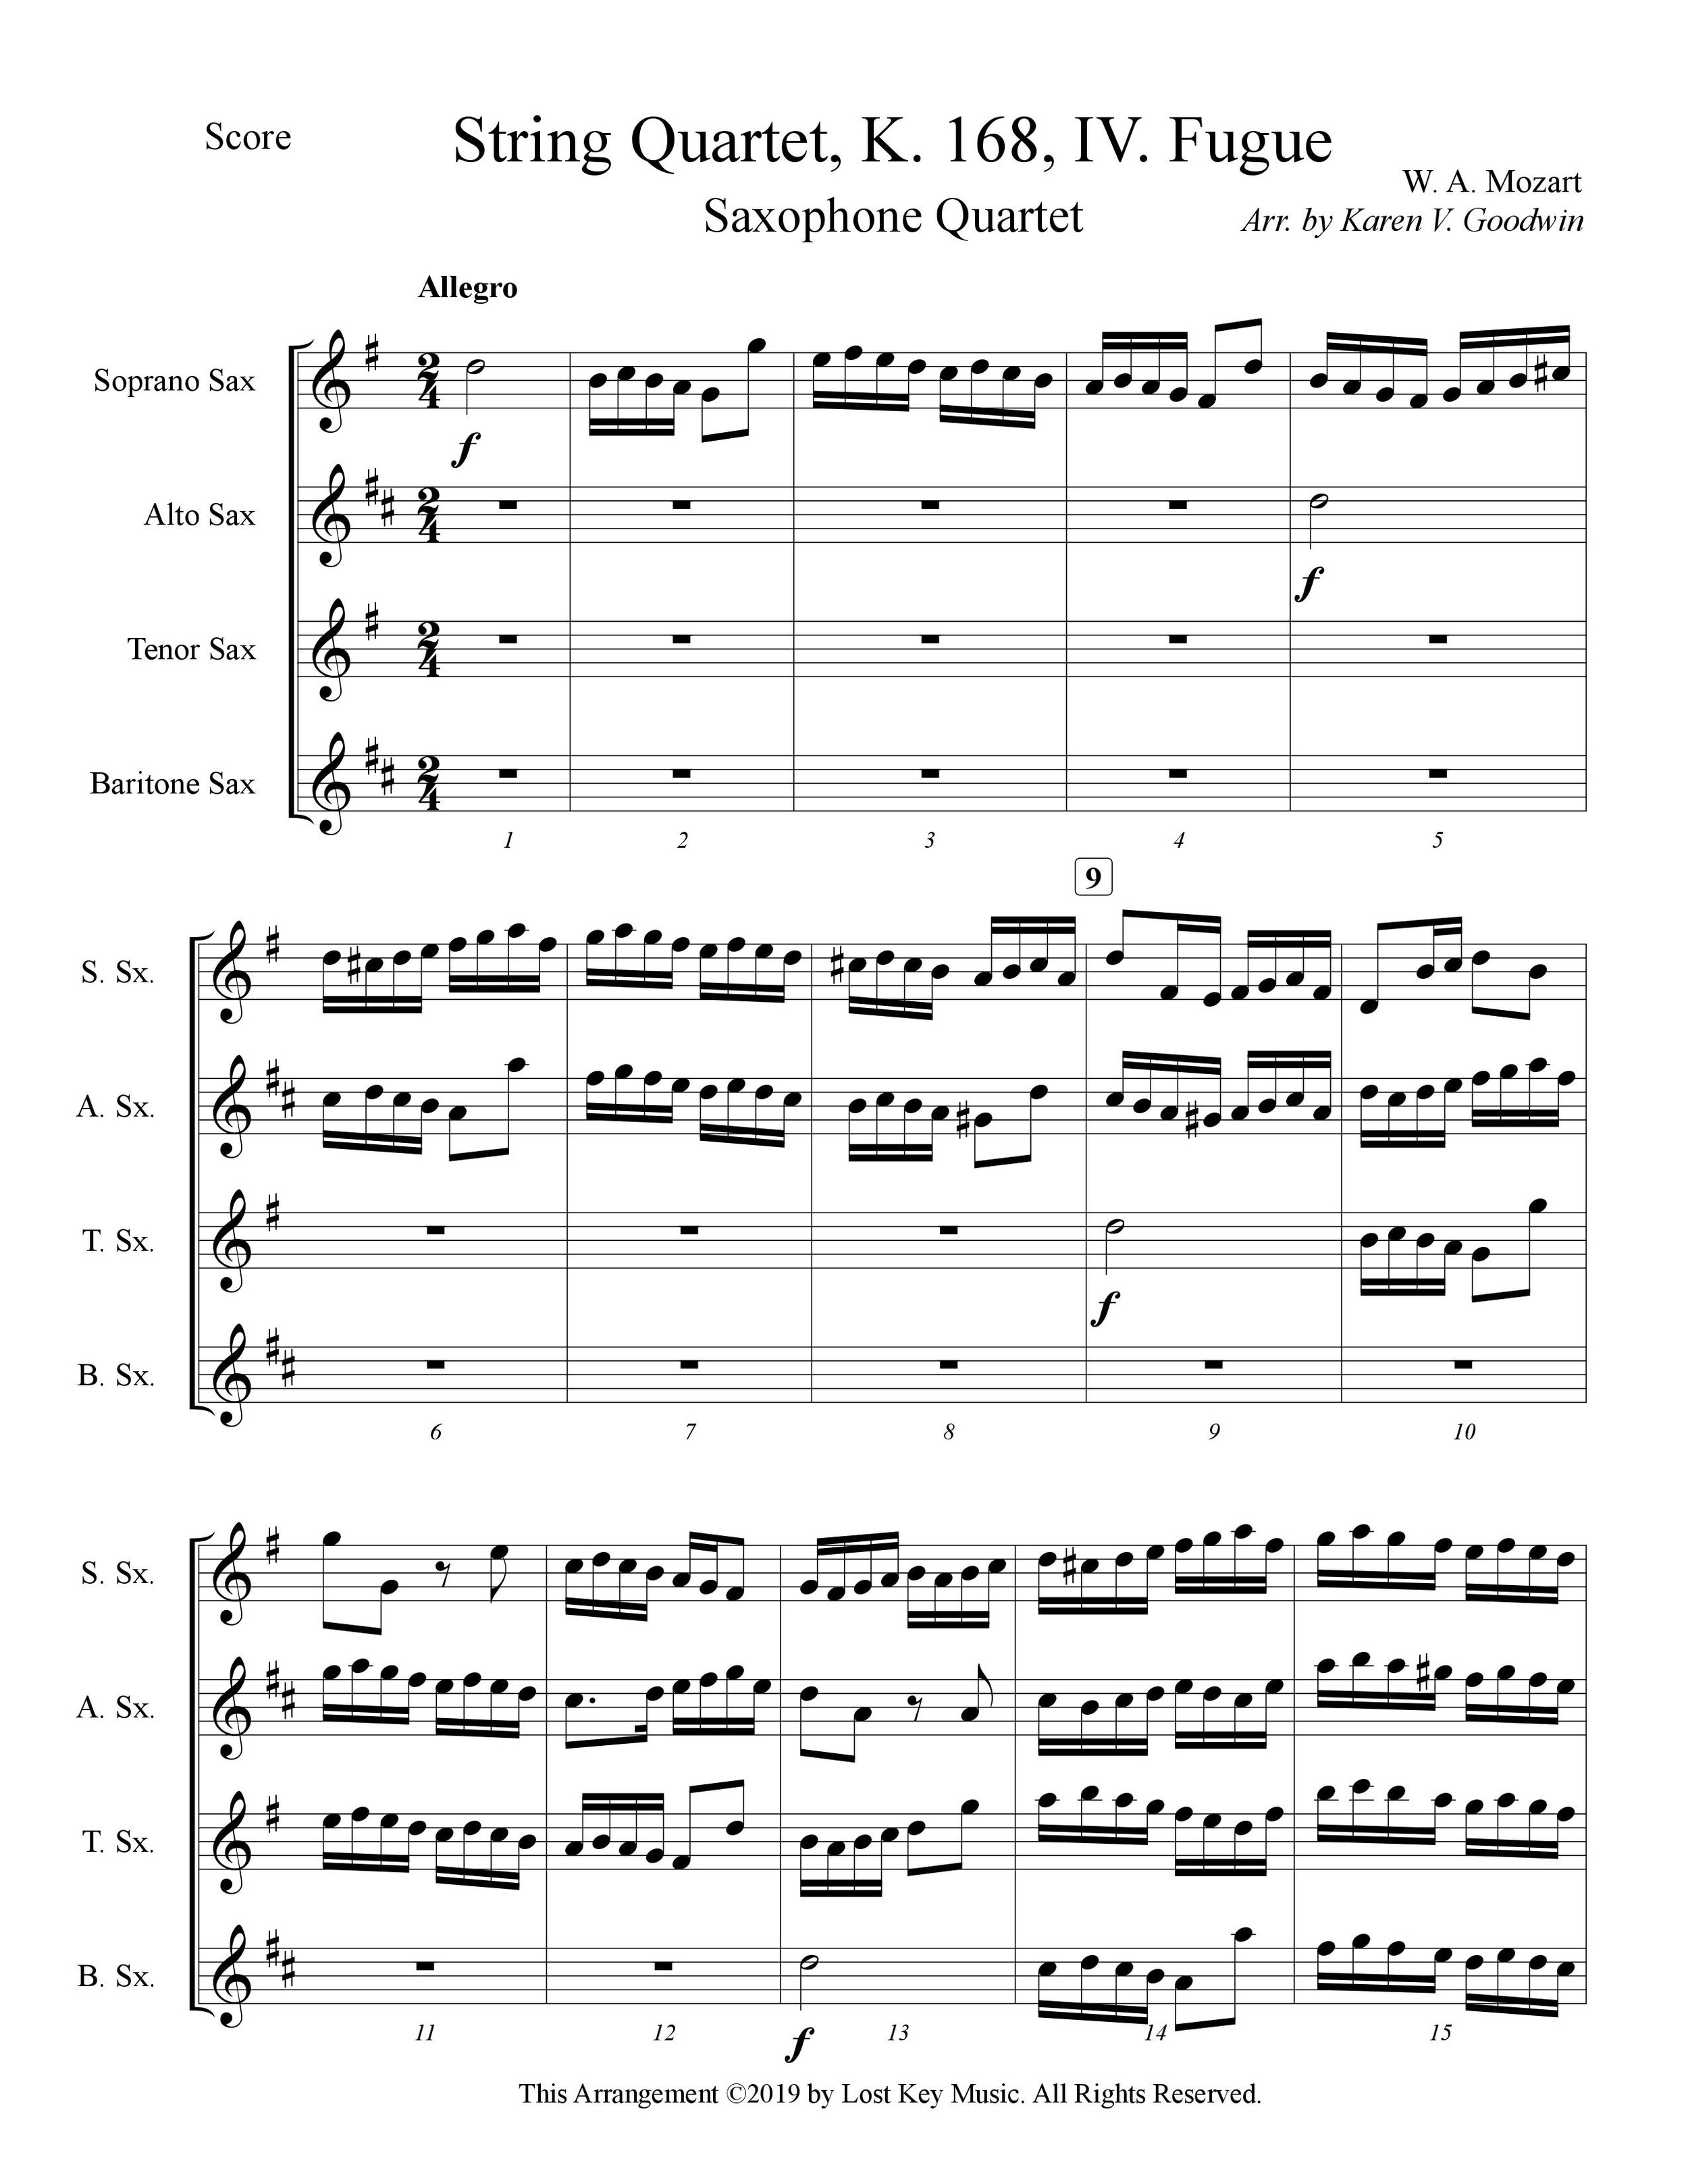 Mozart String Quartet, K. 168, IV. Fugue-Saxophone Quartet-Score Sample.jpg